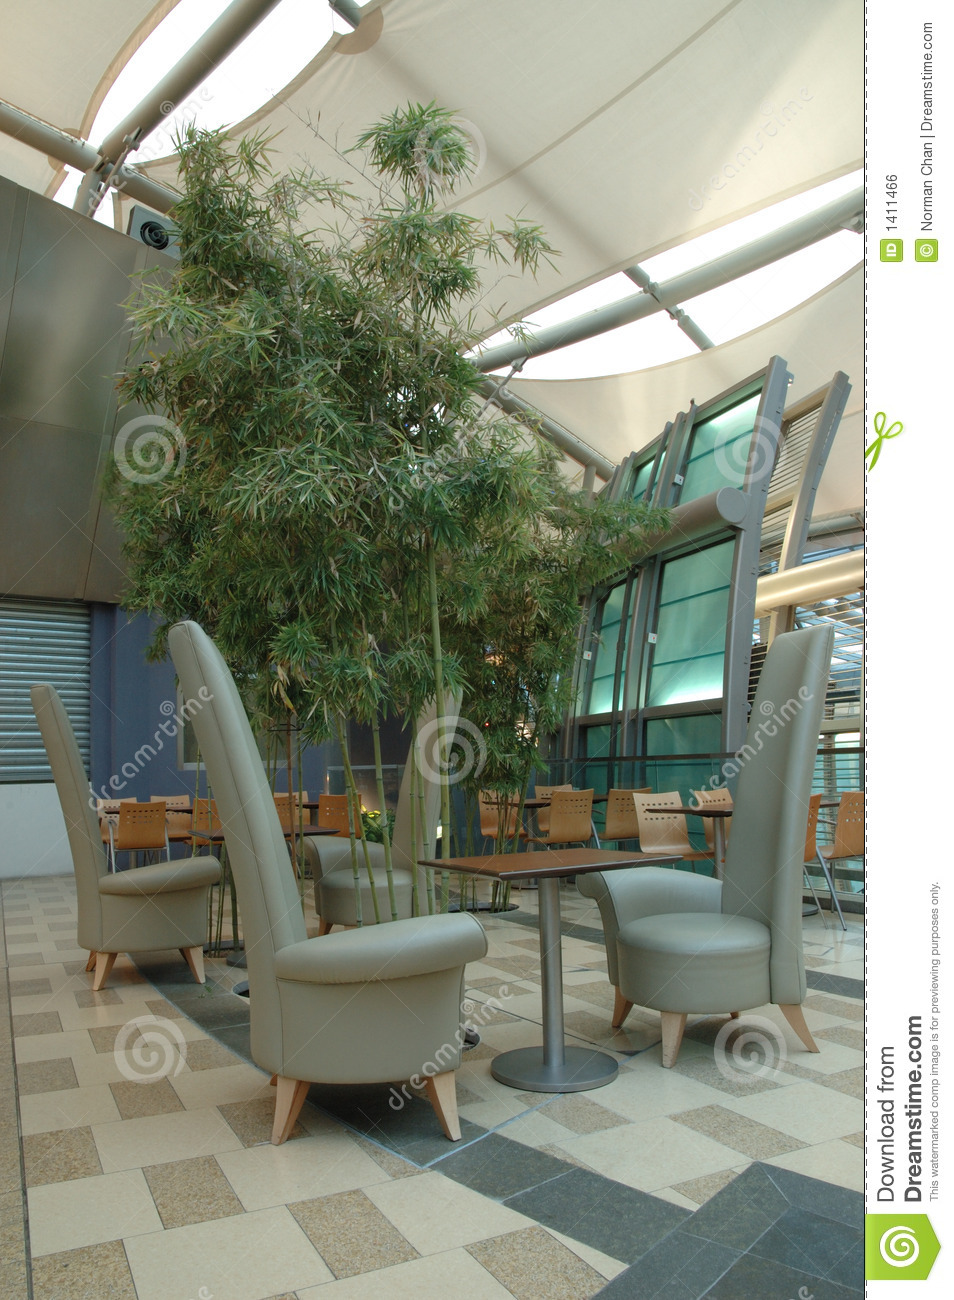 Interior Design Of Food Court Area Royalty Free Stock